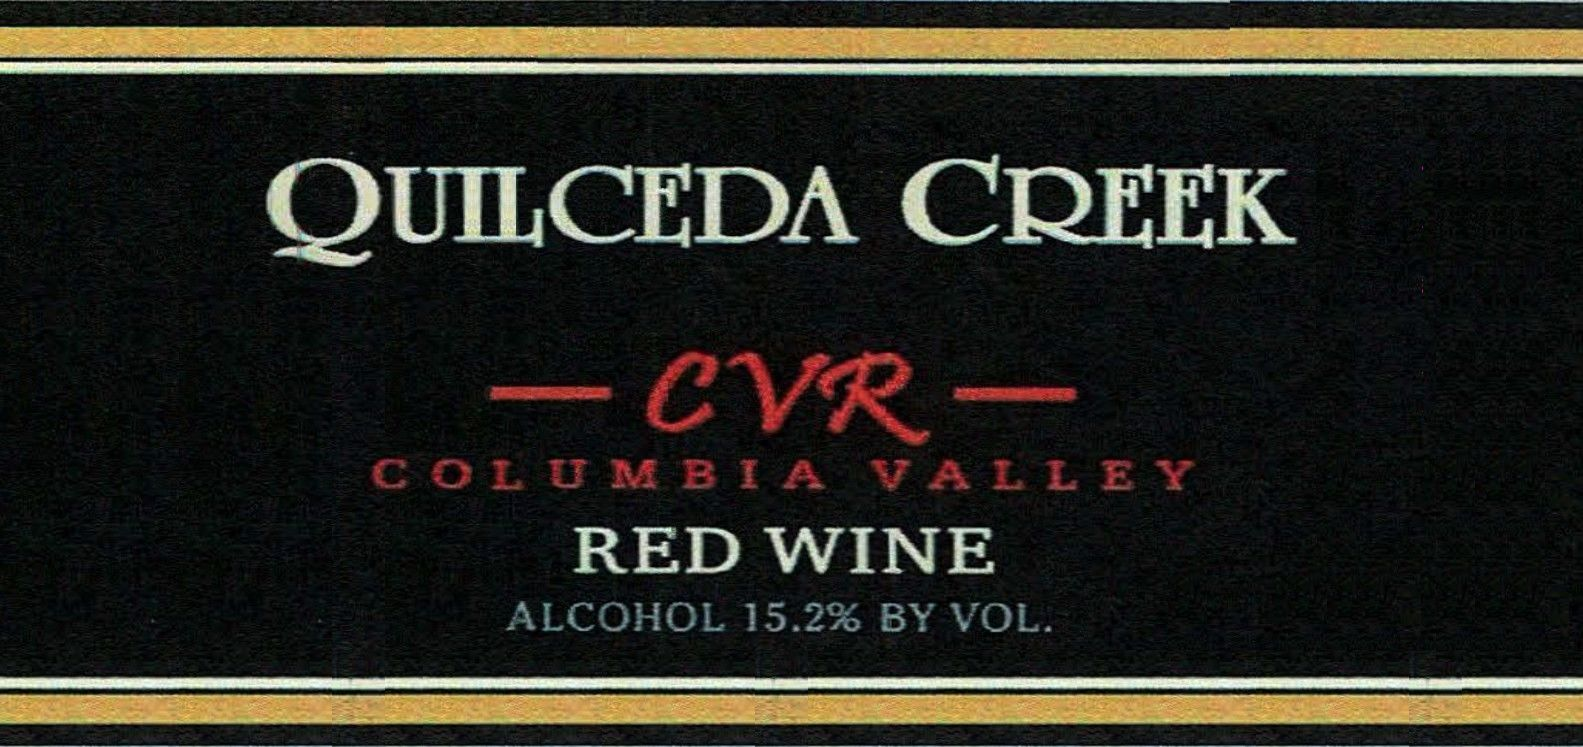 Quilceda Creek CVR Columbia Valley Red (1.5 Liter Magnum) 2016 Front Label